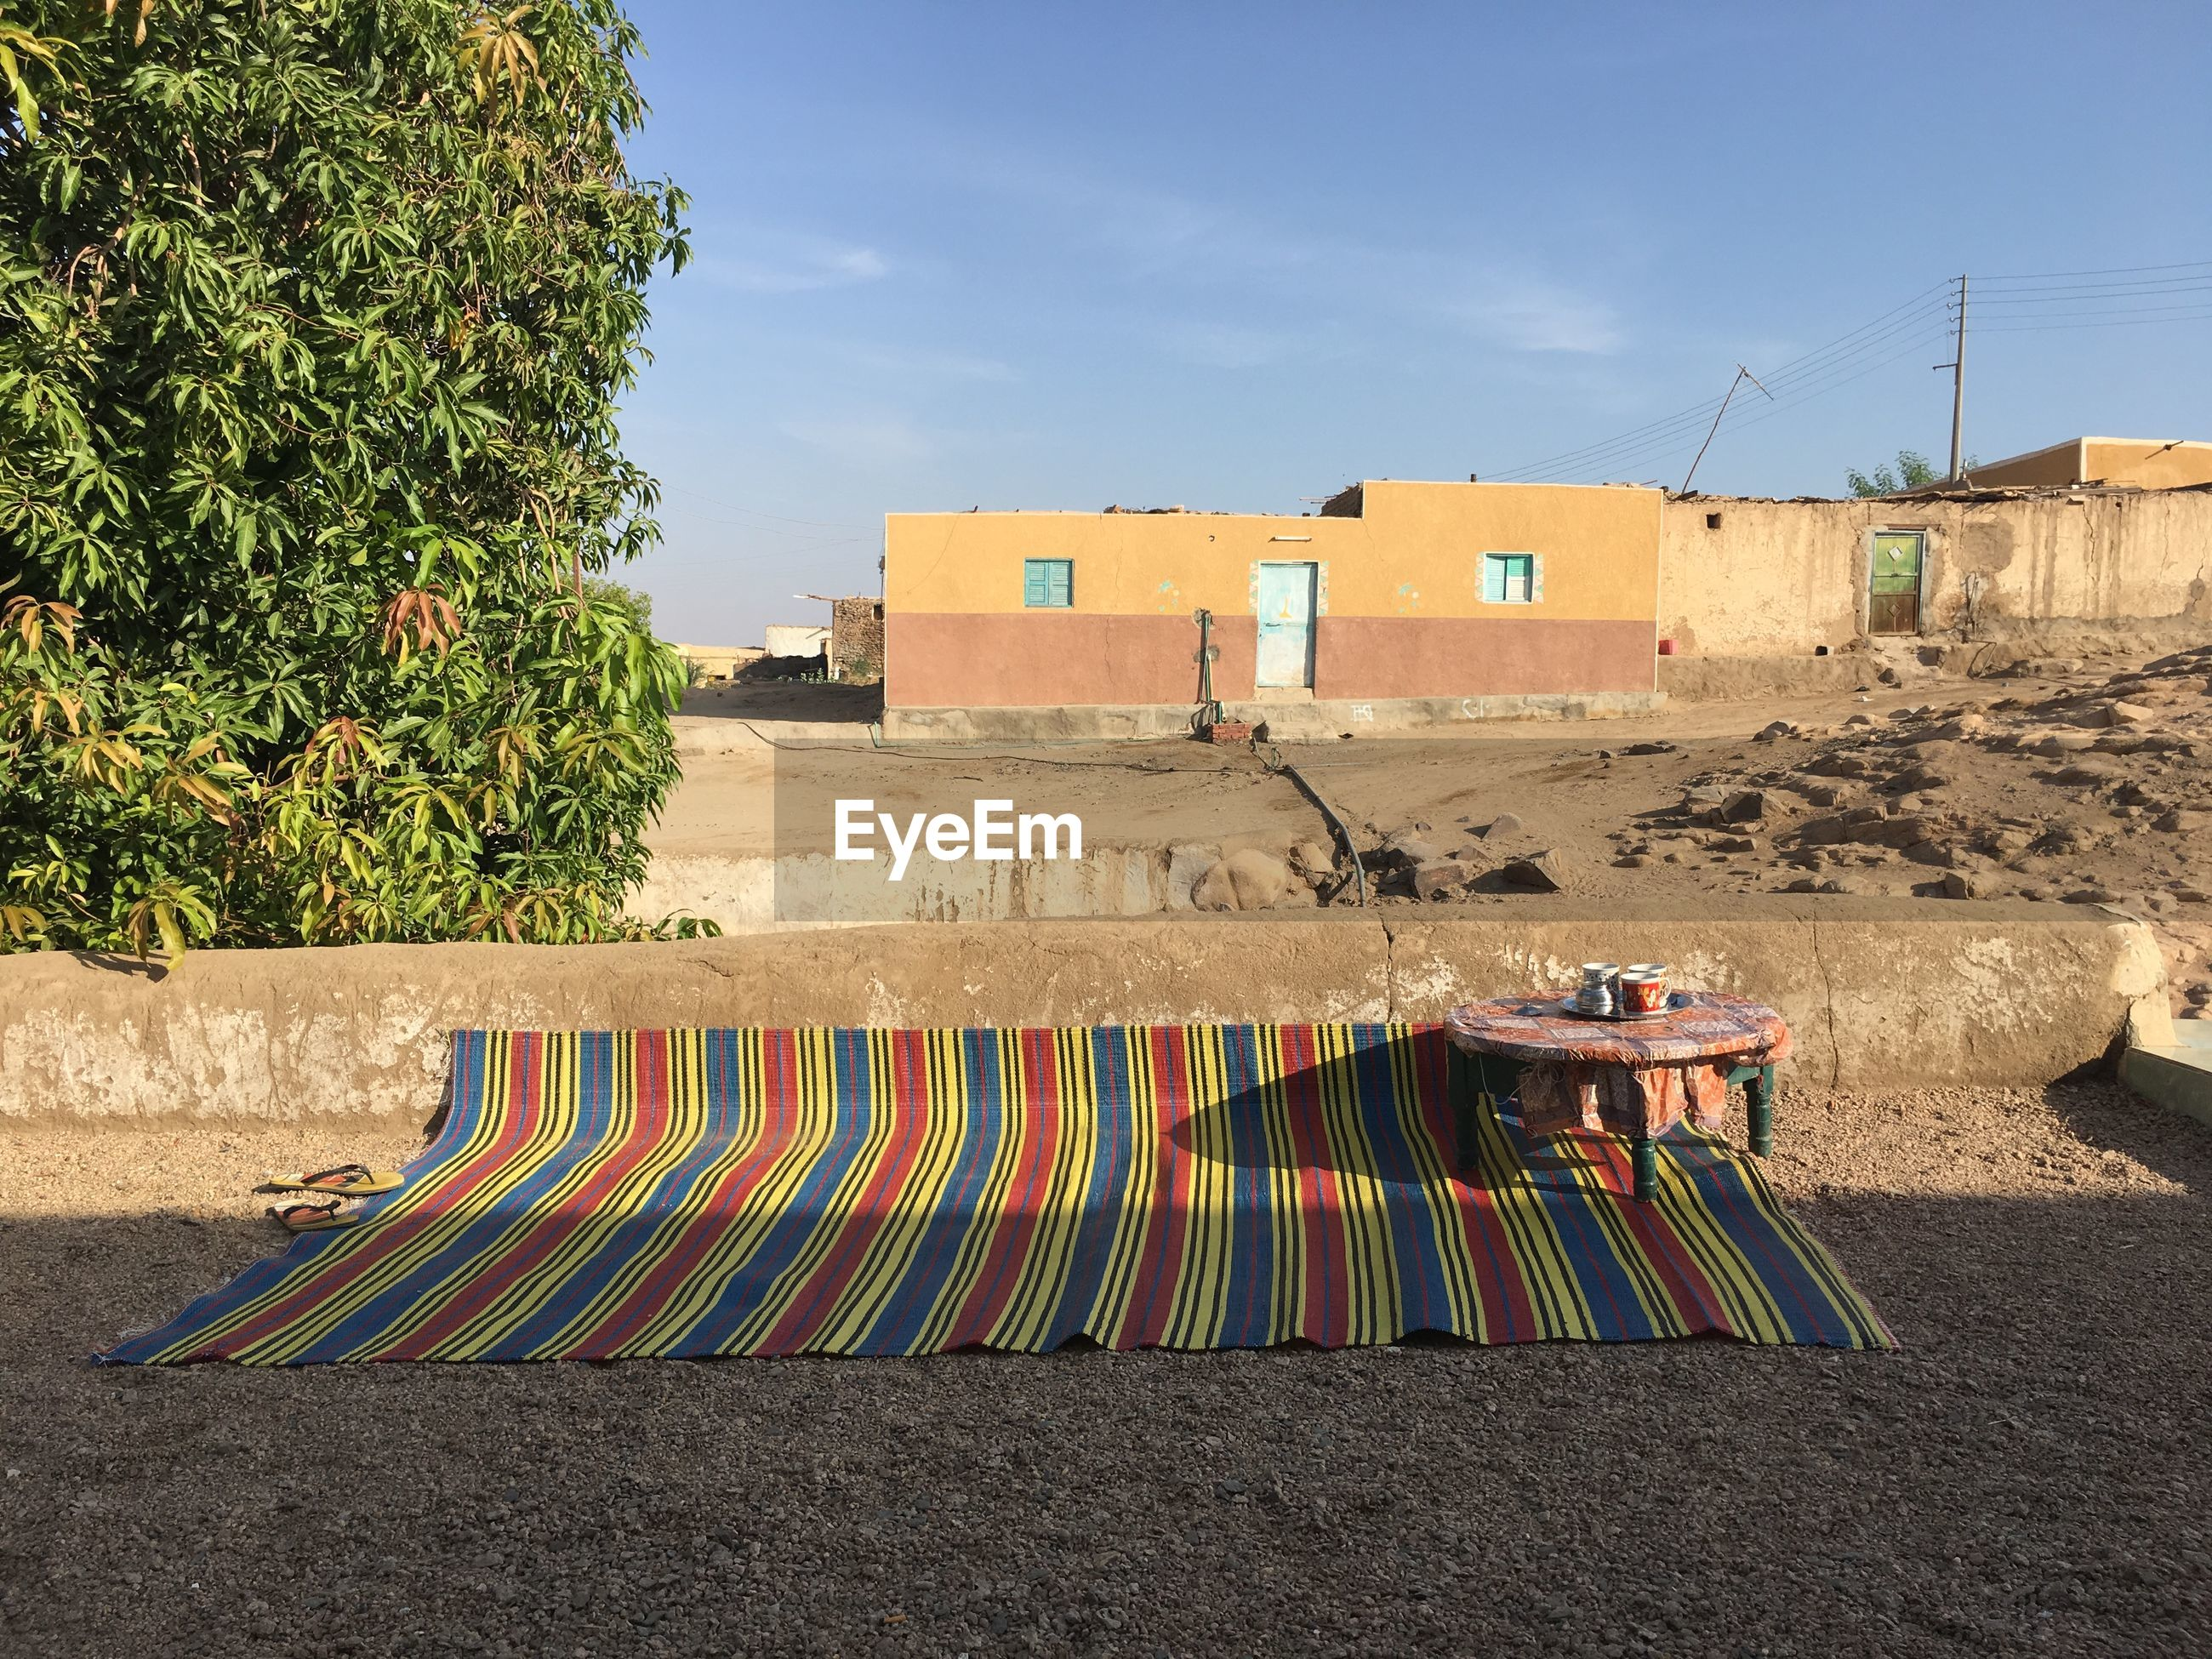 Carpet and table on field against trees and houses during sunny day